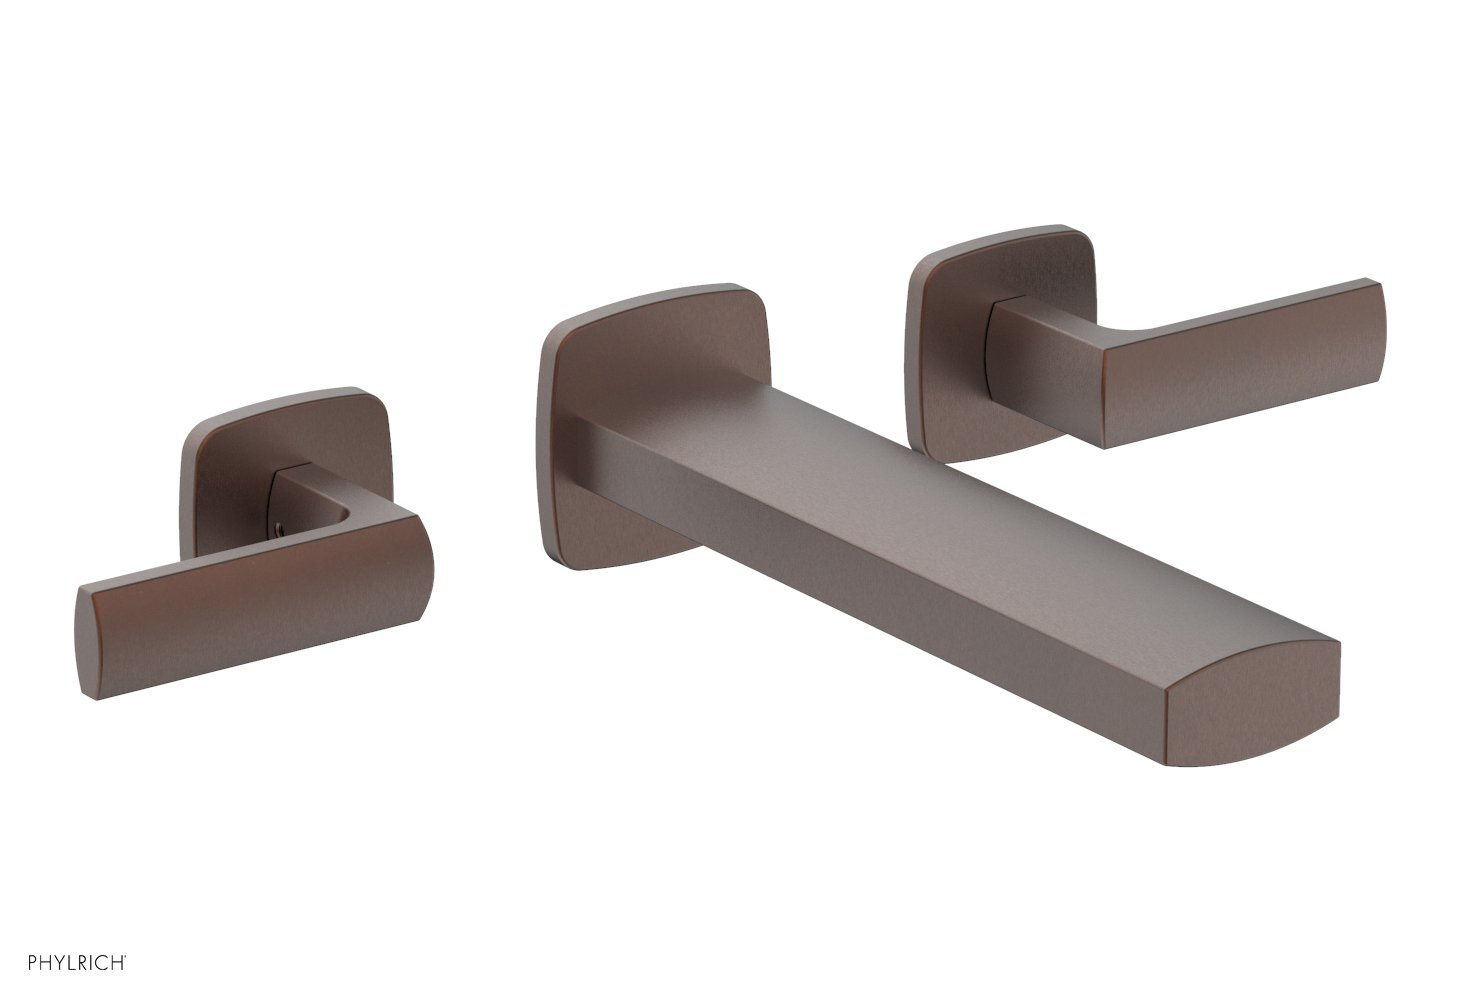 Phylrich 181-12-05W RADI Wall Lavatory Set - Lever Handles - Weathered Copper